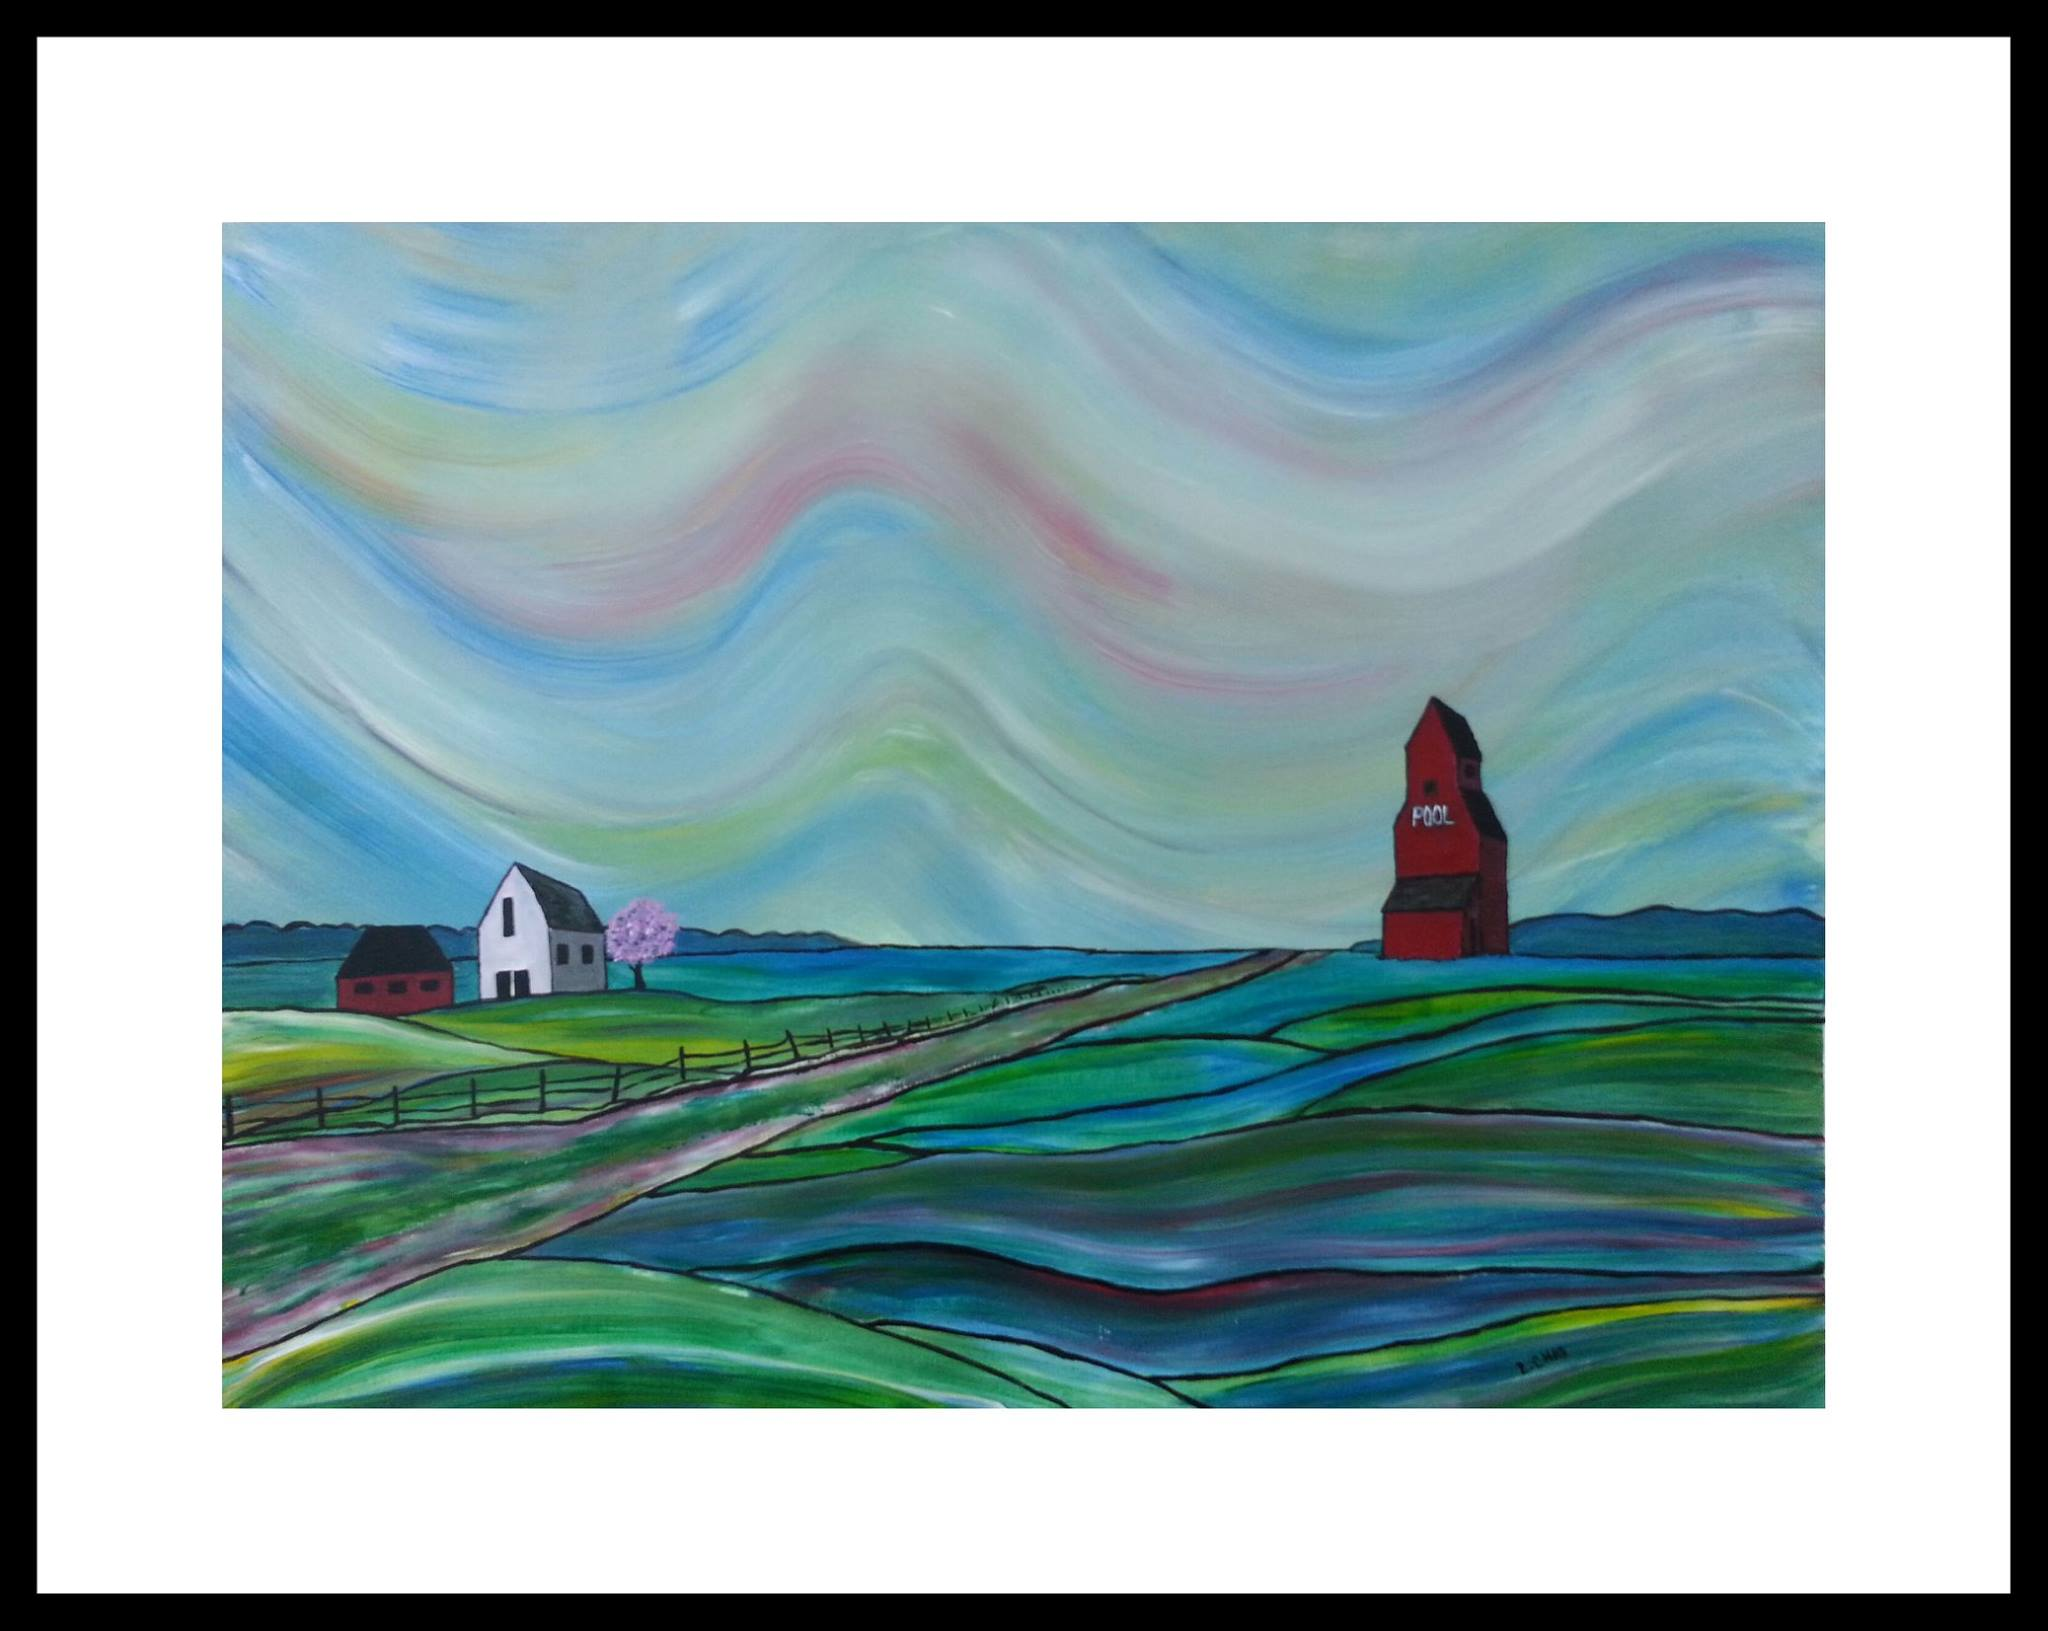 """Prairie Sea"" [2015] Acrylic on paper. 22.5"" x 16.5"" (image). 30.5"" x 24.5"" (framed). SOLD"